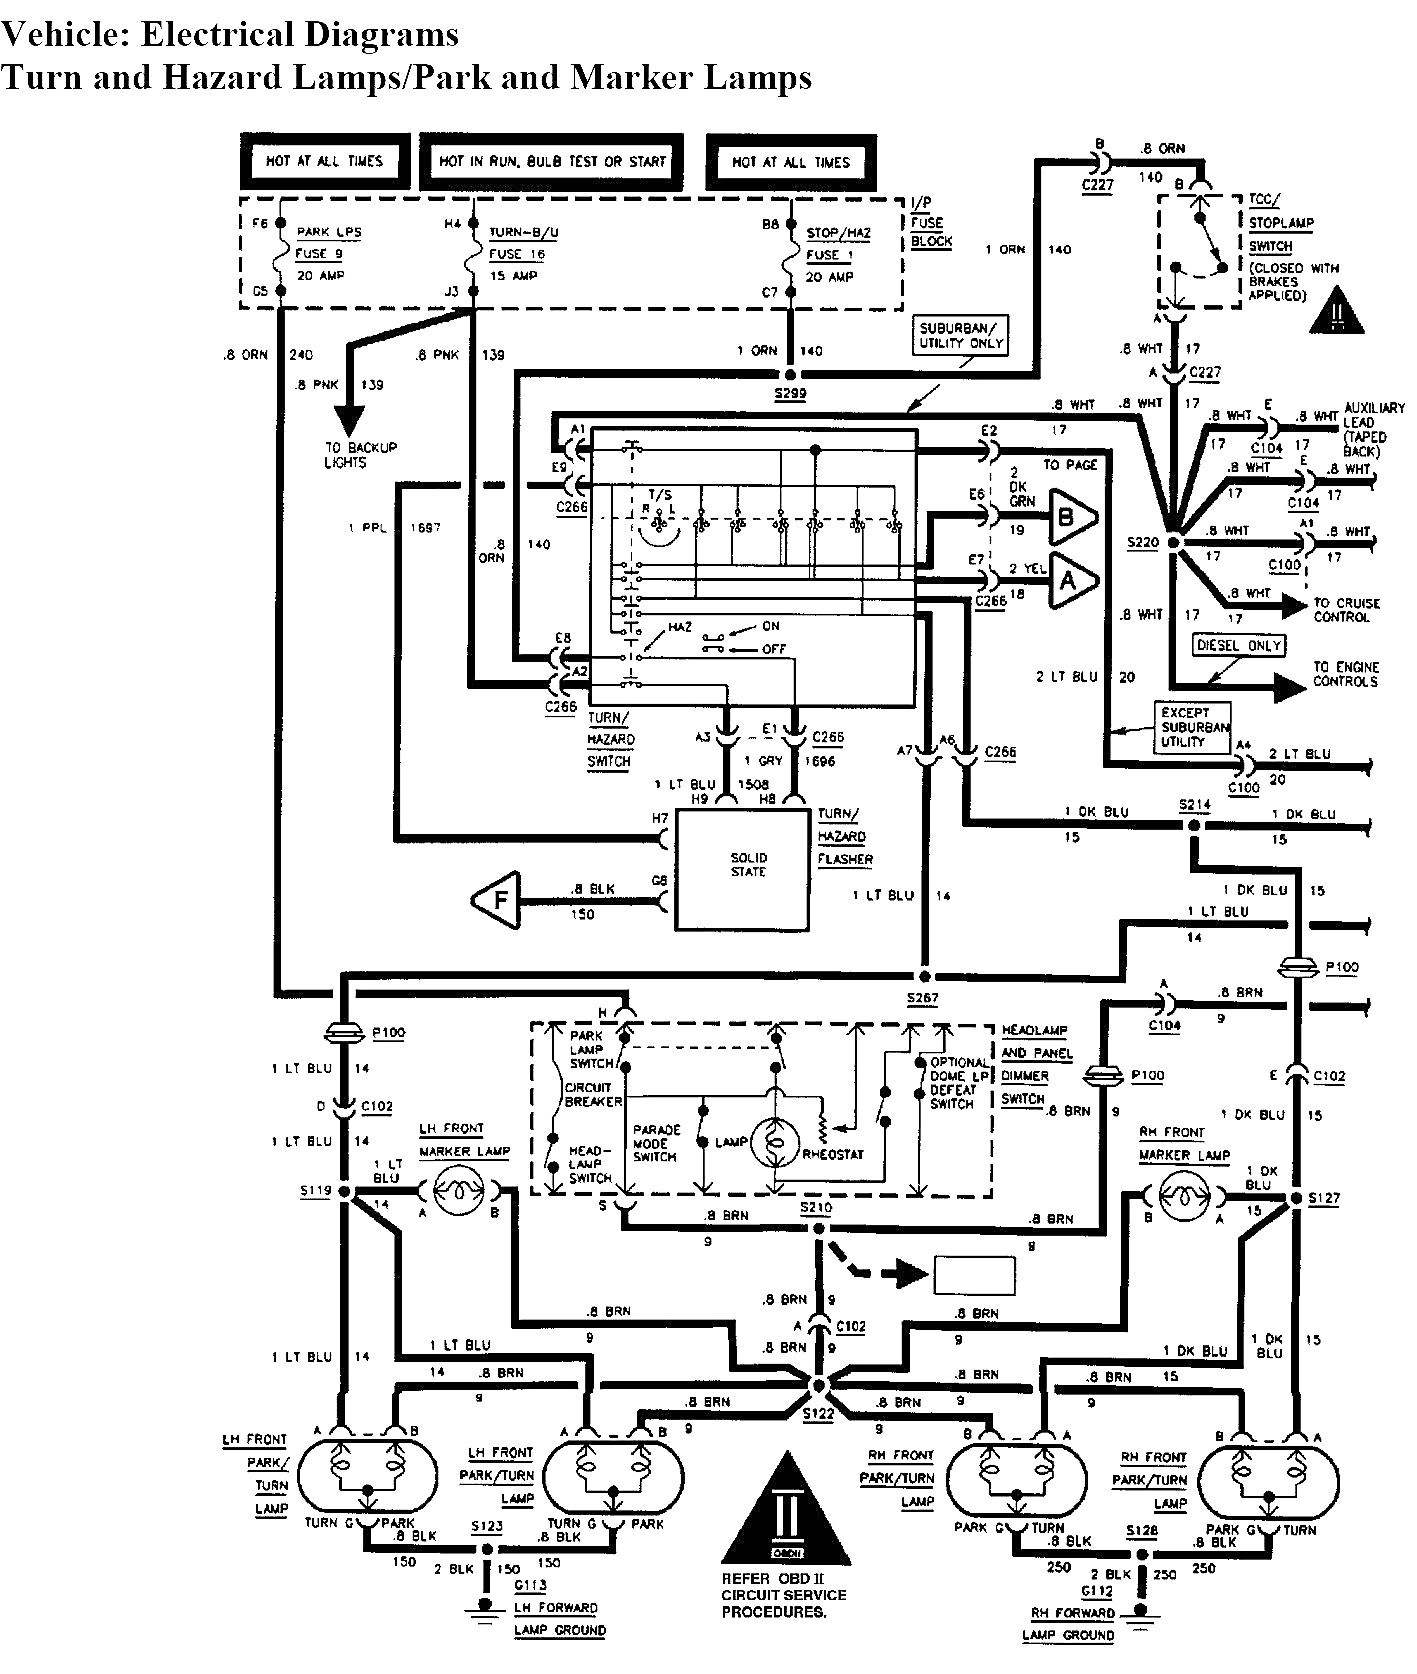 2000 silverado tail light wiring diagram my wiring diagram rh detoxicrecenze 2000 chevy blazer brake light wiring diagram 2002 chevy s10 tail light